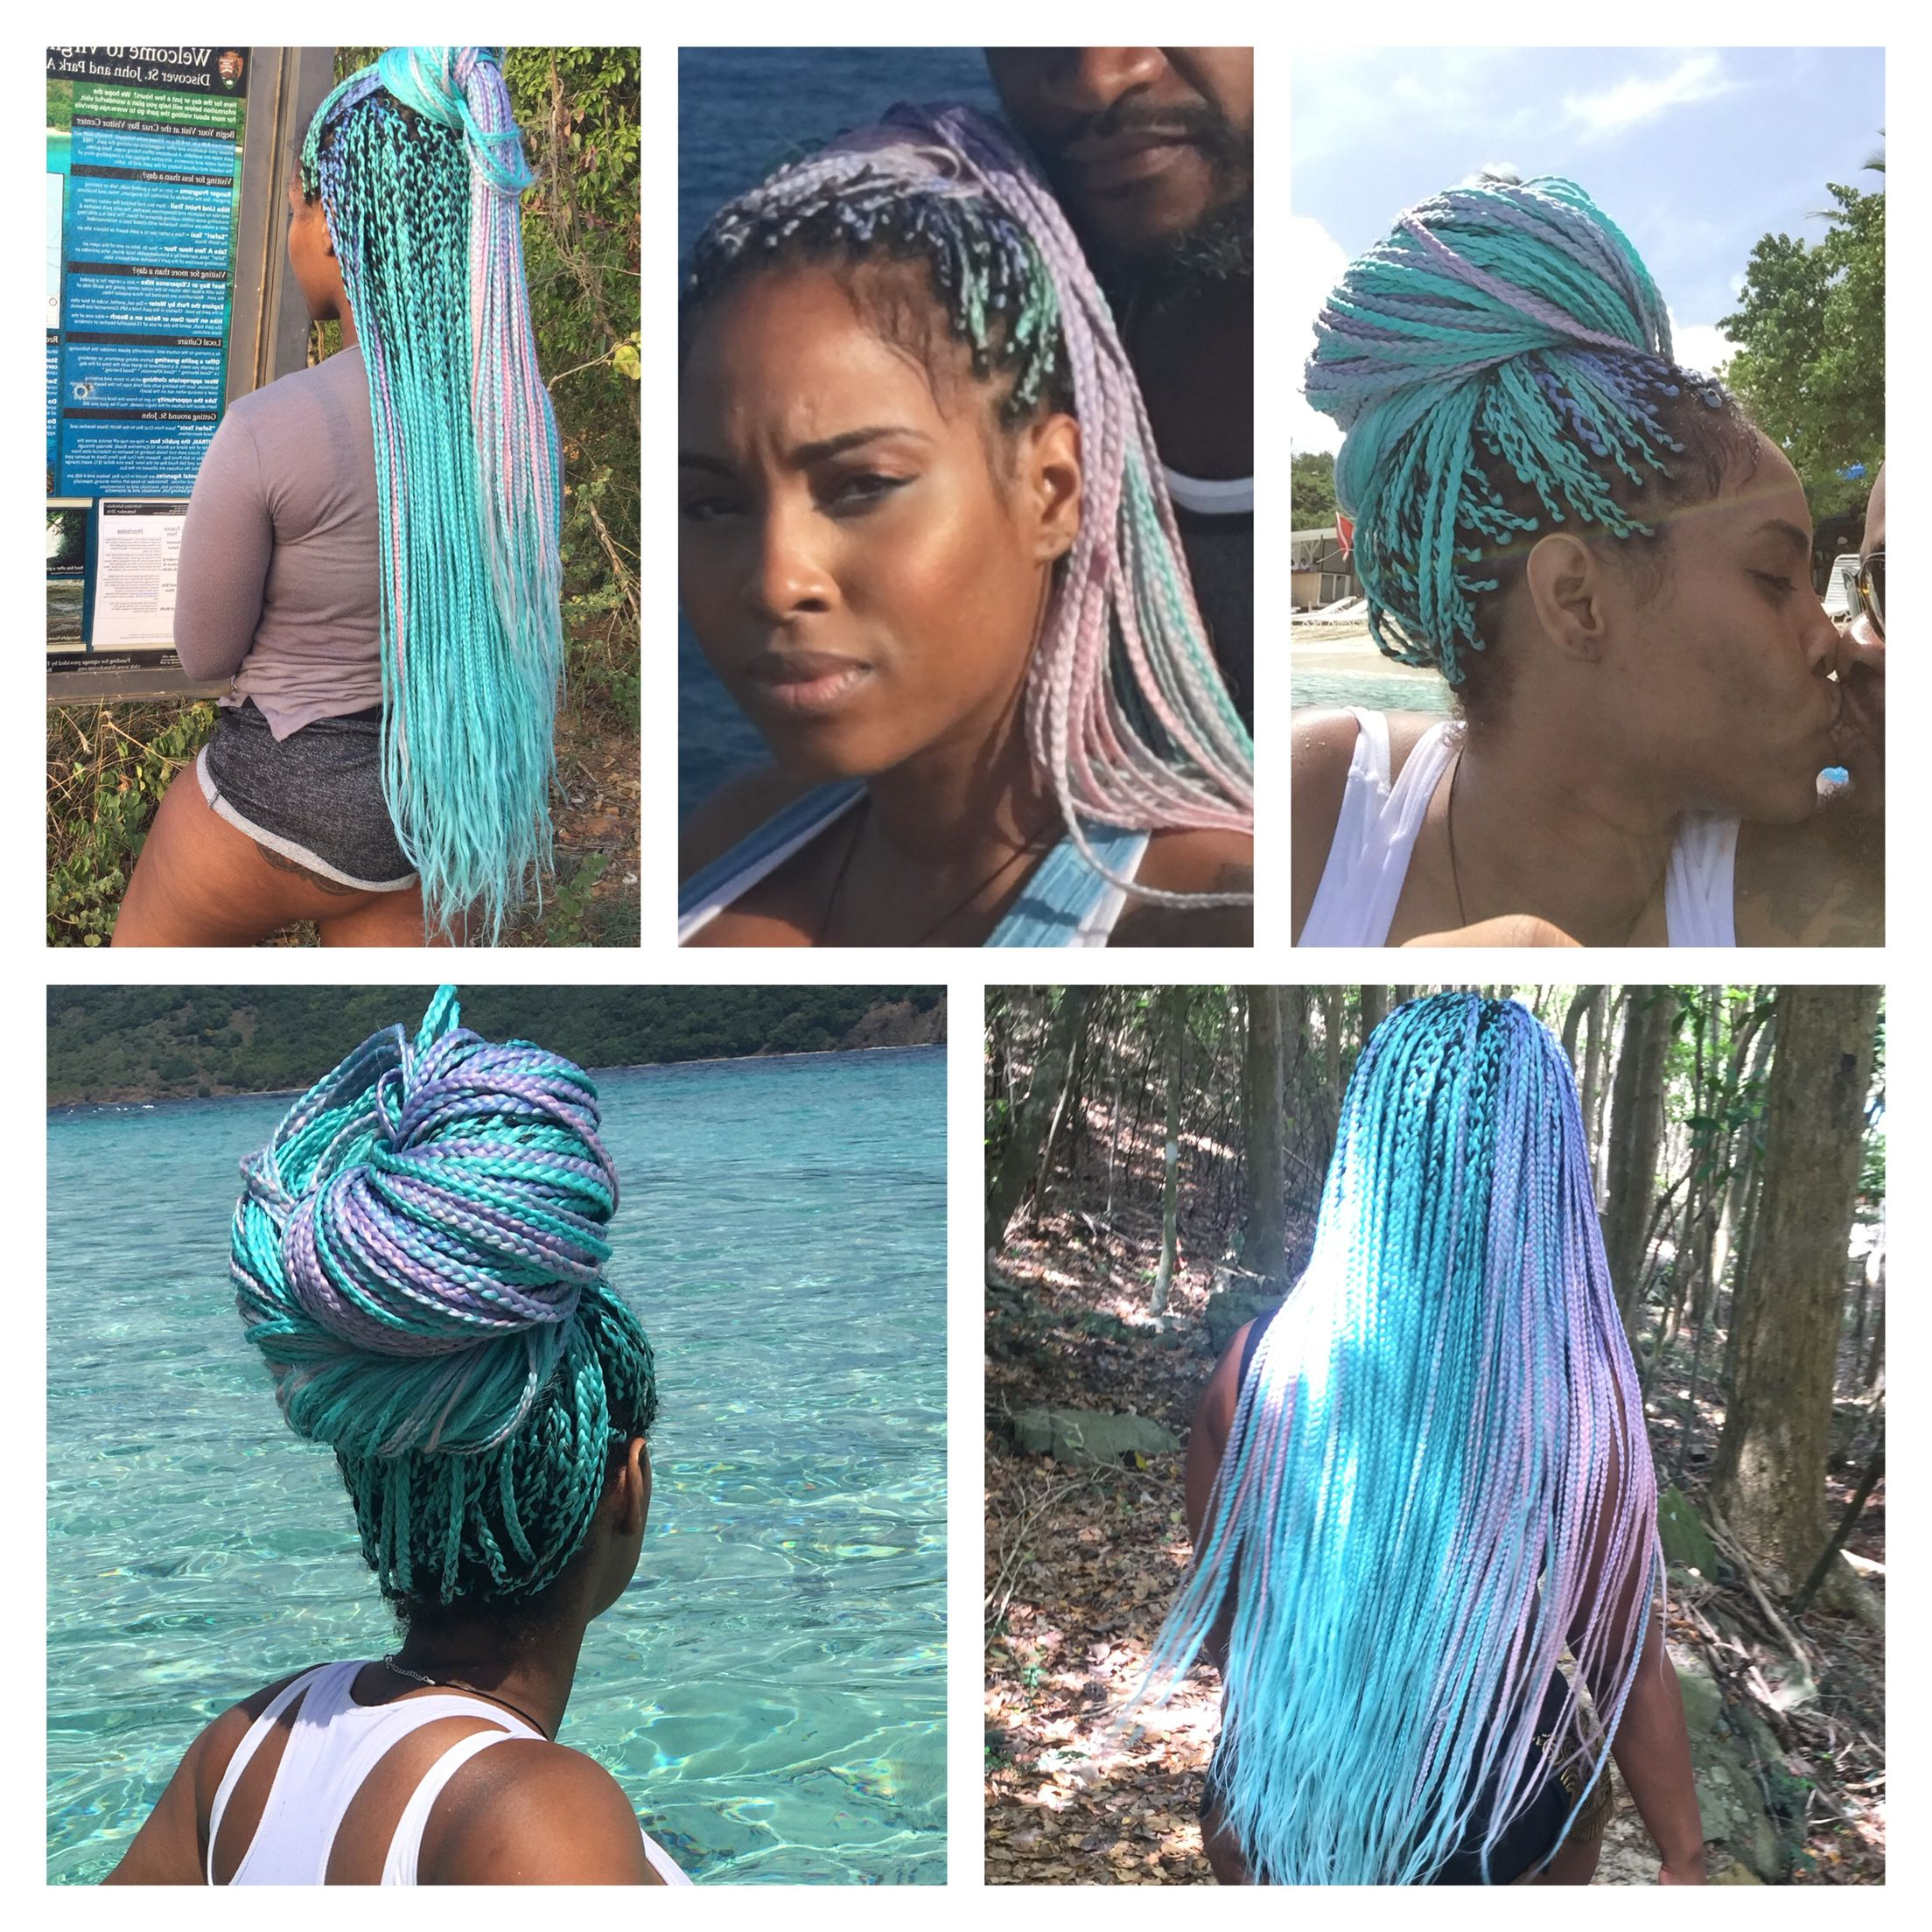 Braided Pertaining To Most Current Blue And Gray Yarn Braid Hairstyles With Beads (View 2 of 20)